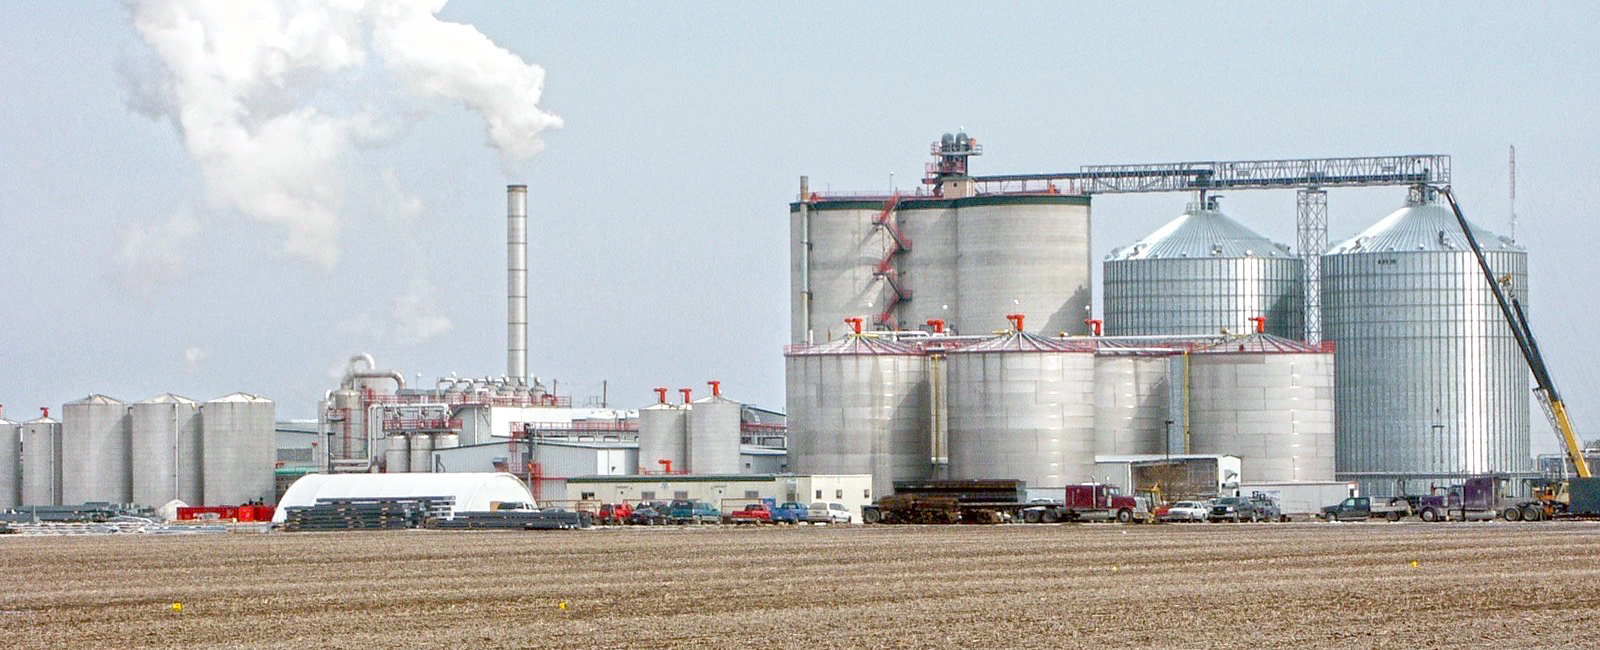 ICM and The Andersons form JV to build Bio-Refinery located in Colwich, Kansas, USA